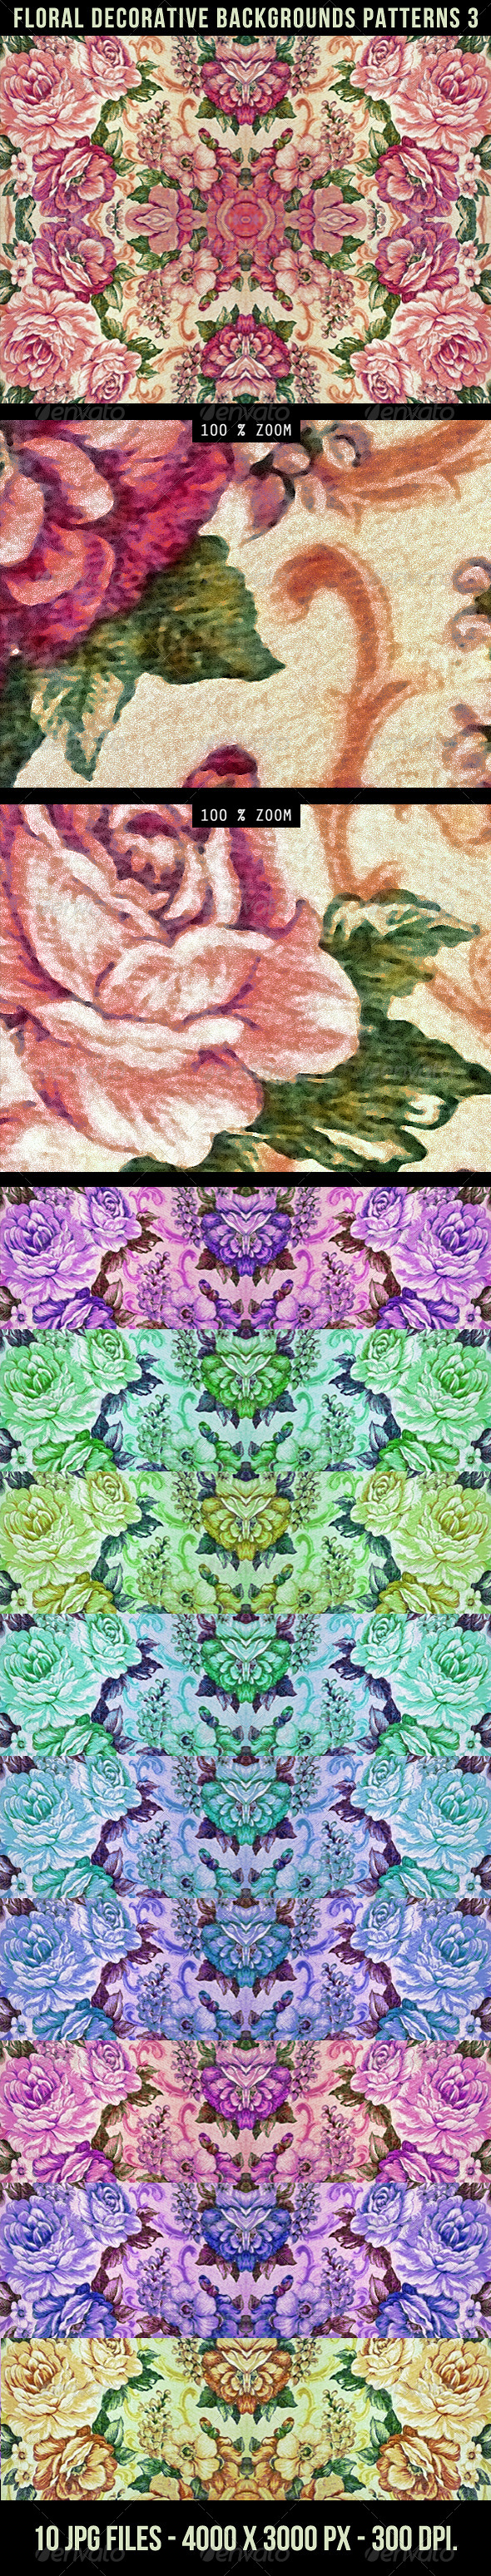 GraphicRiver Floral Decorative Background Pattern 3 4329193